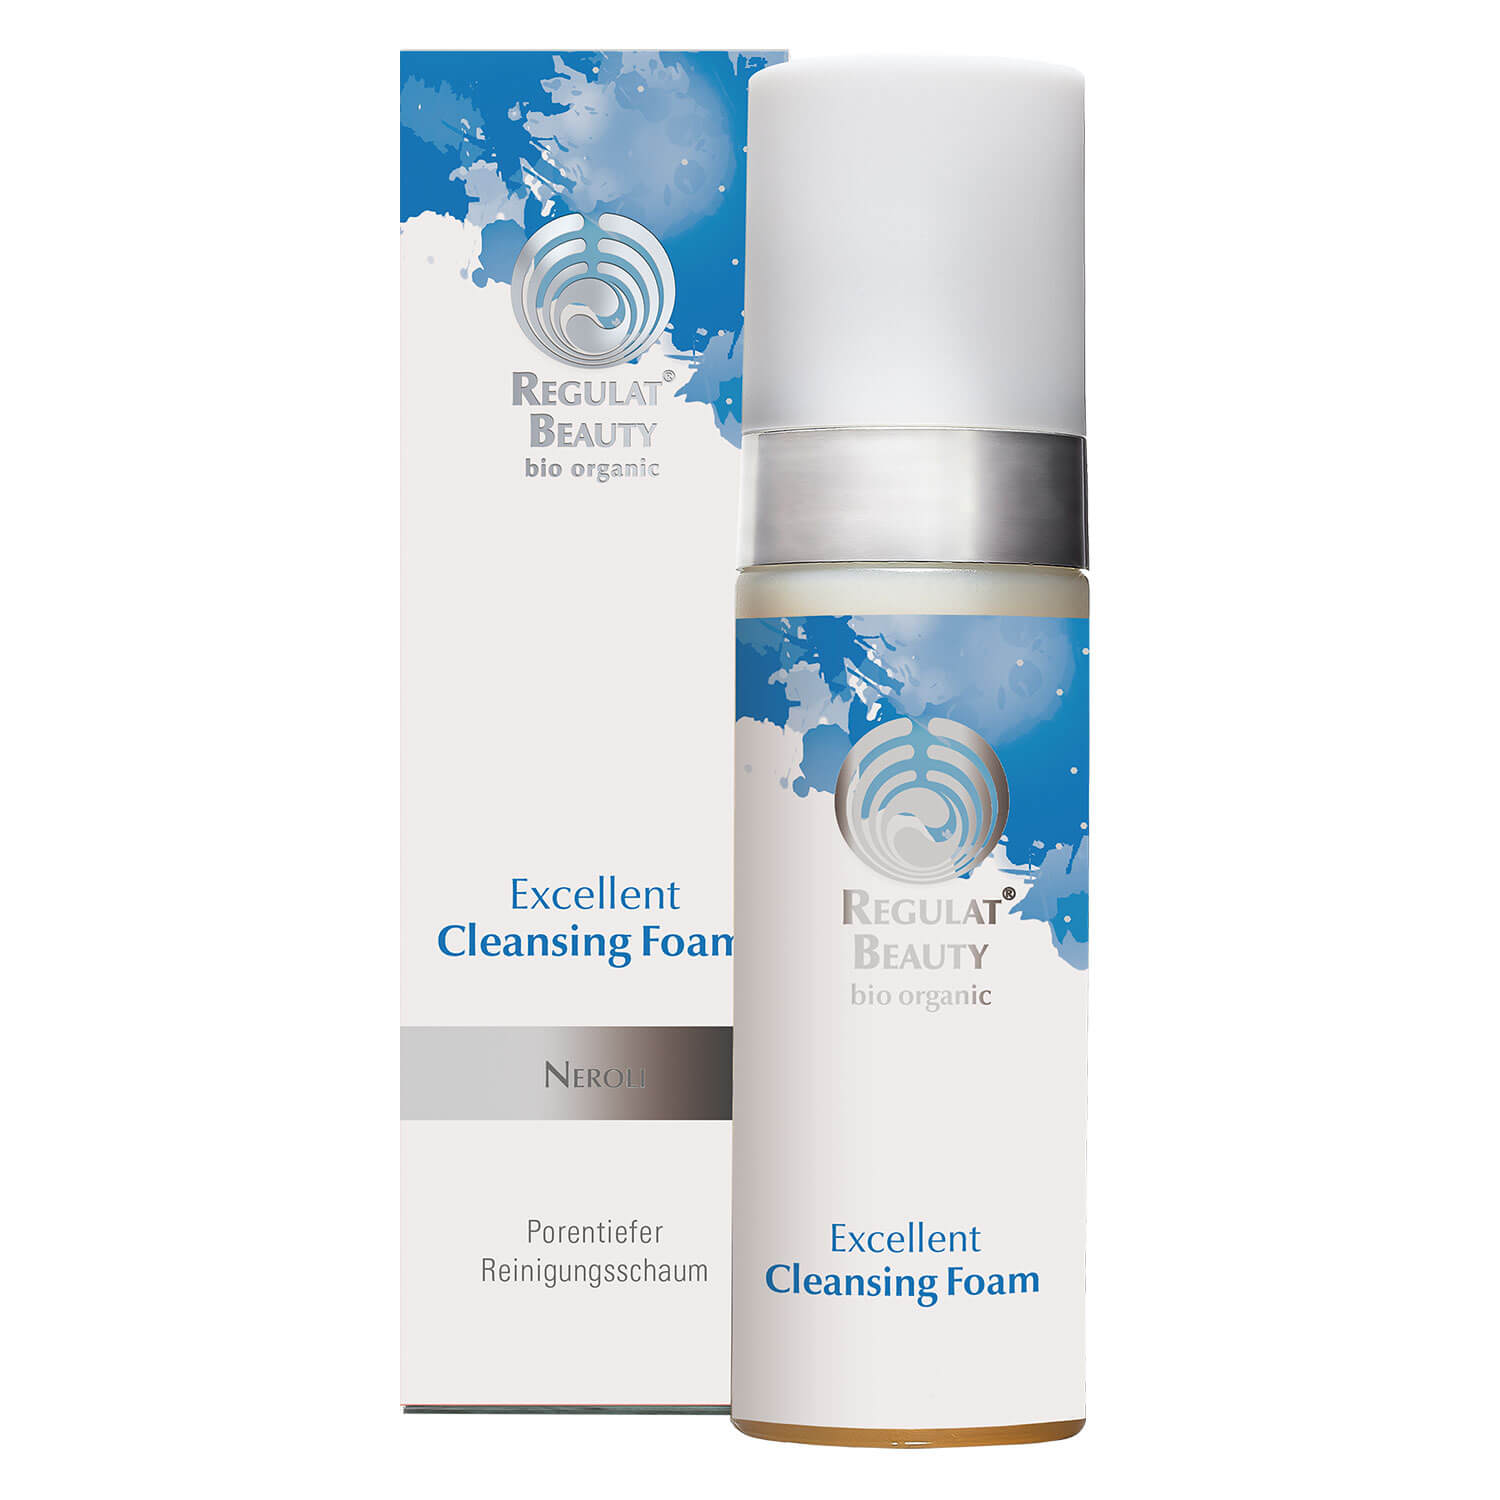 Regulat® Beauty - Excellent Cleansing Foam